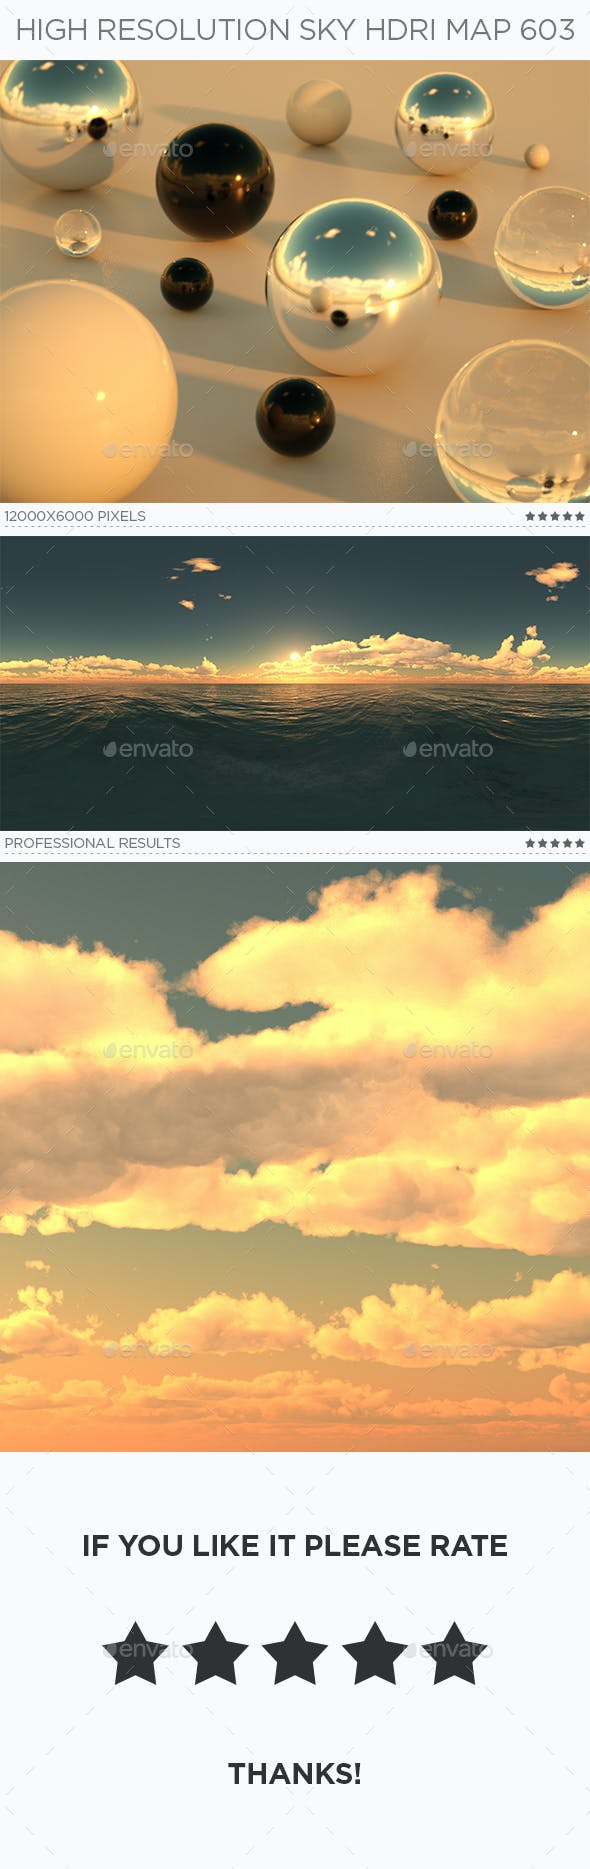 High Resolution Sky HDRi Map 603 - 3DOcean Item for Sale